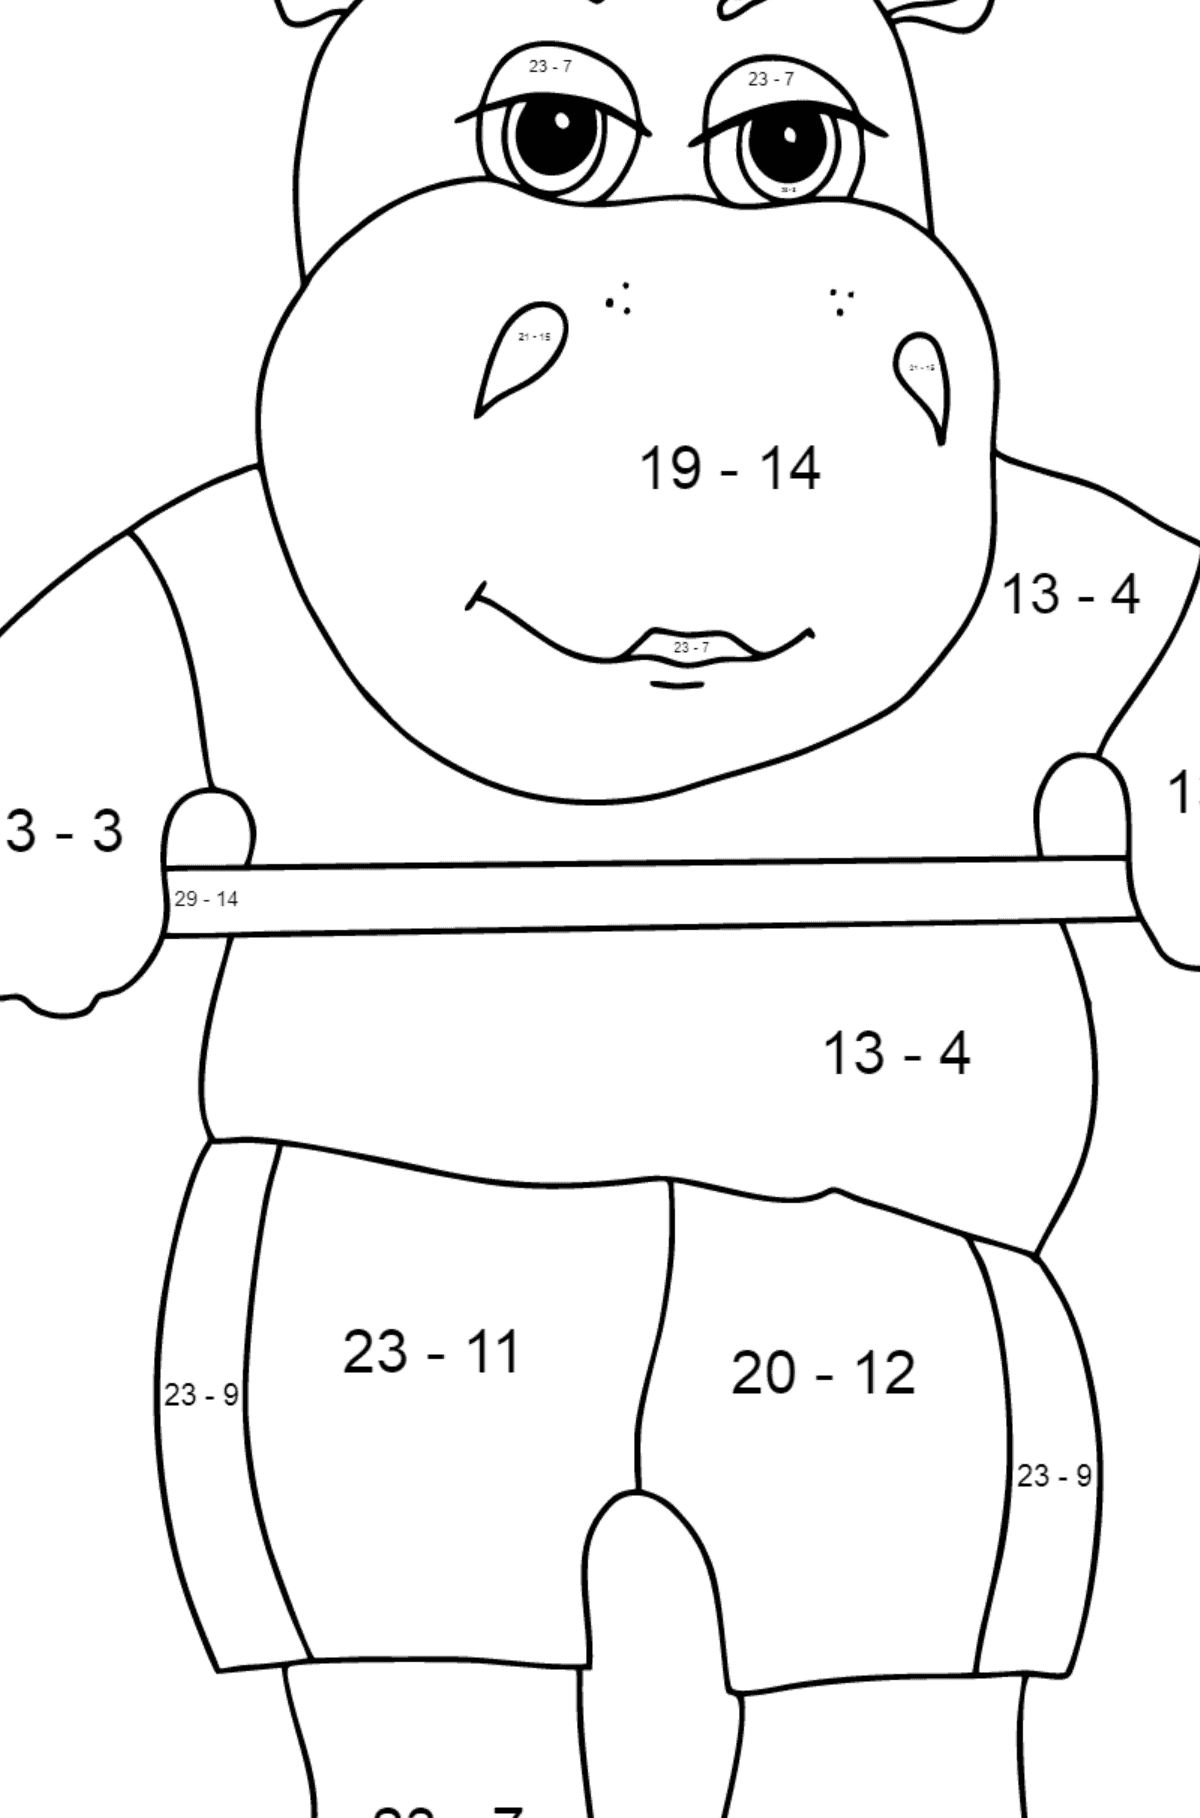 Coloring Page - A Hippo Lifts a Barbell for Children  - Color by Number Substraction